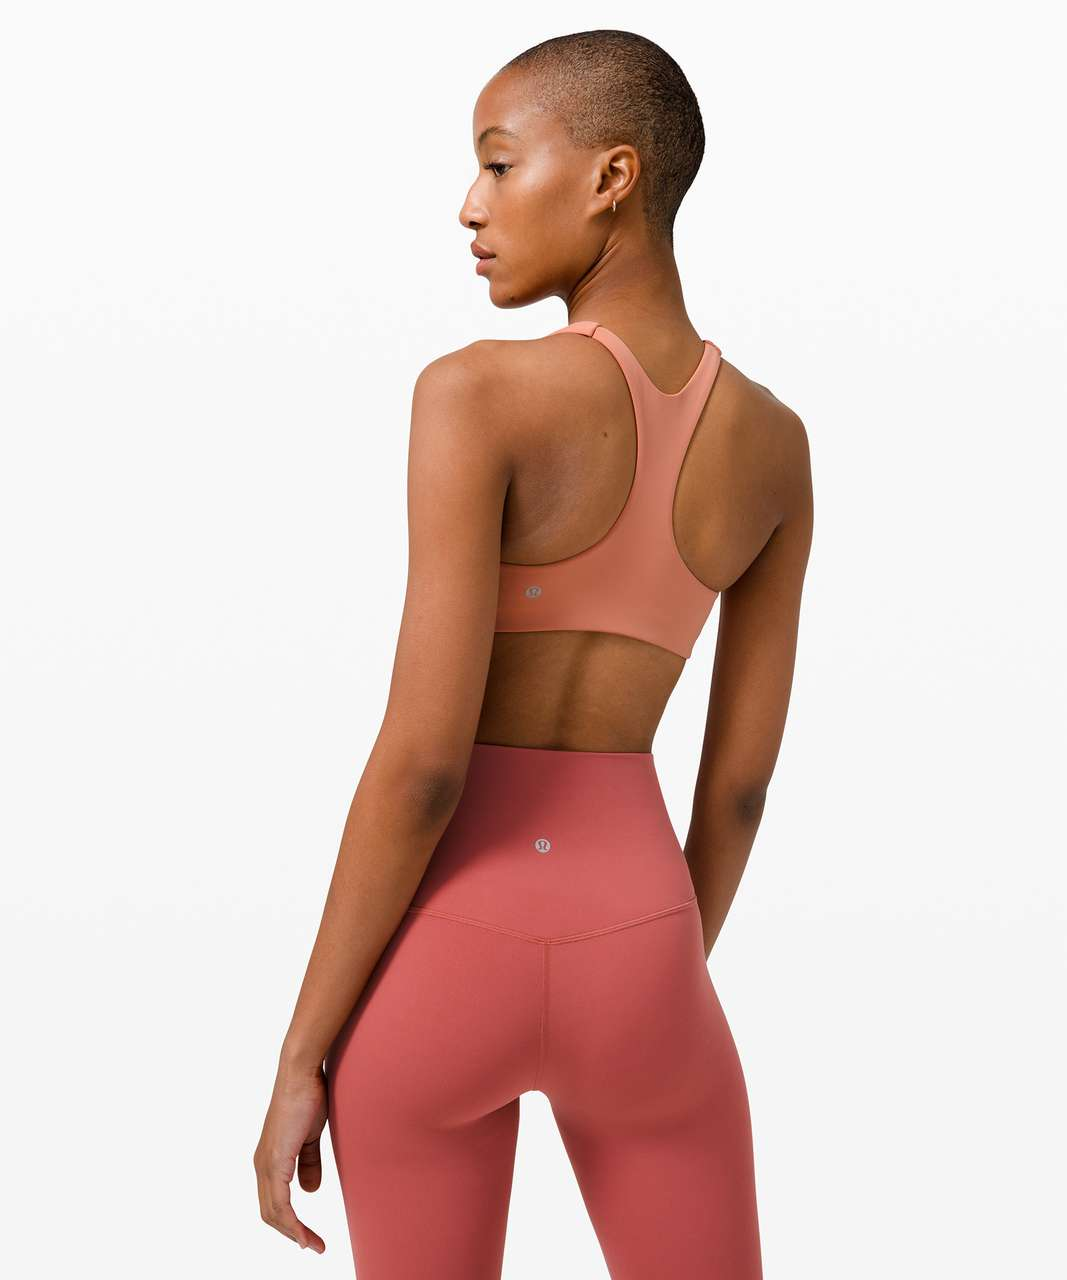 Lululemon In Alignment Racerback Bra *Light Support, B/C Cups - Pink Savannah